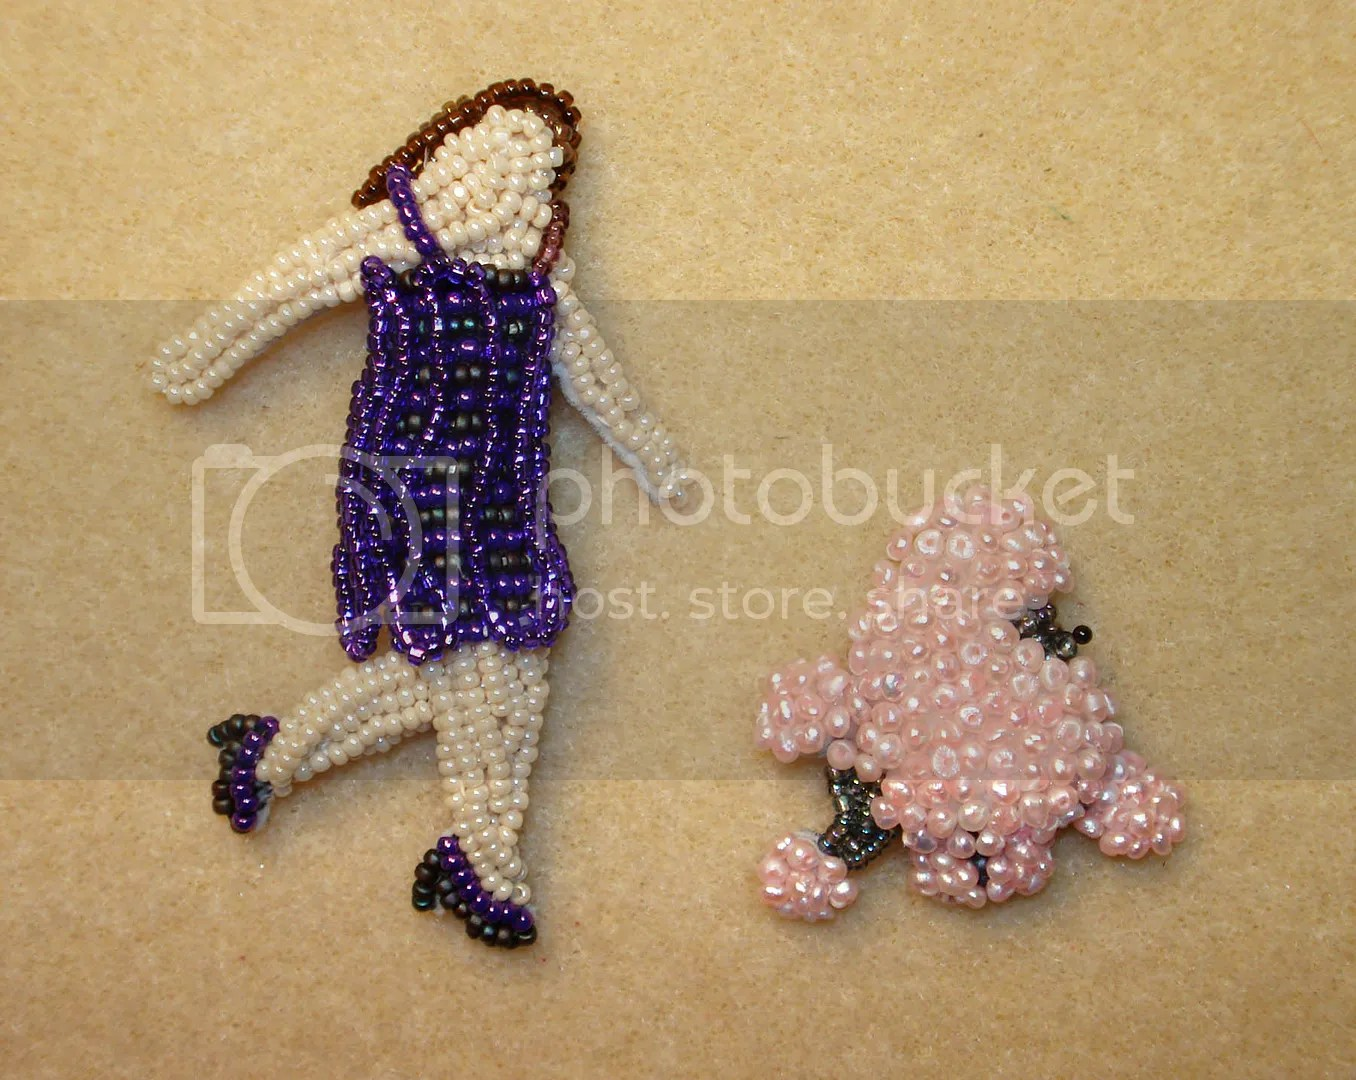 Beaded lady walking dog pin pink pearl poodle bead embroidery beadwork etsy